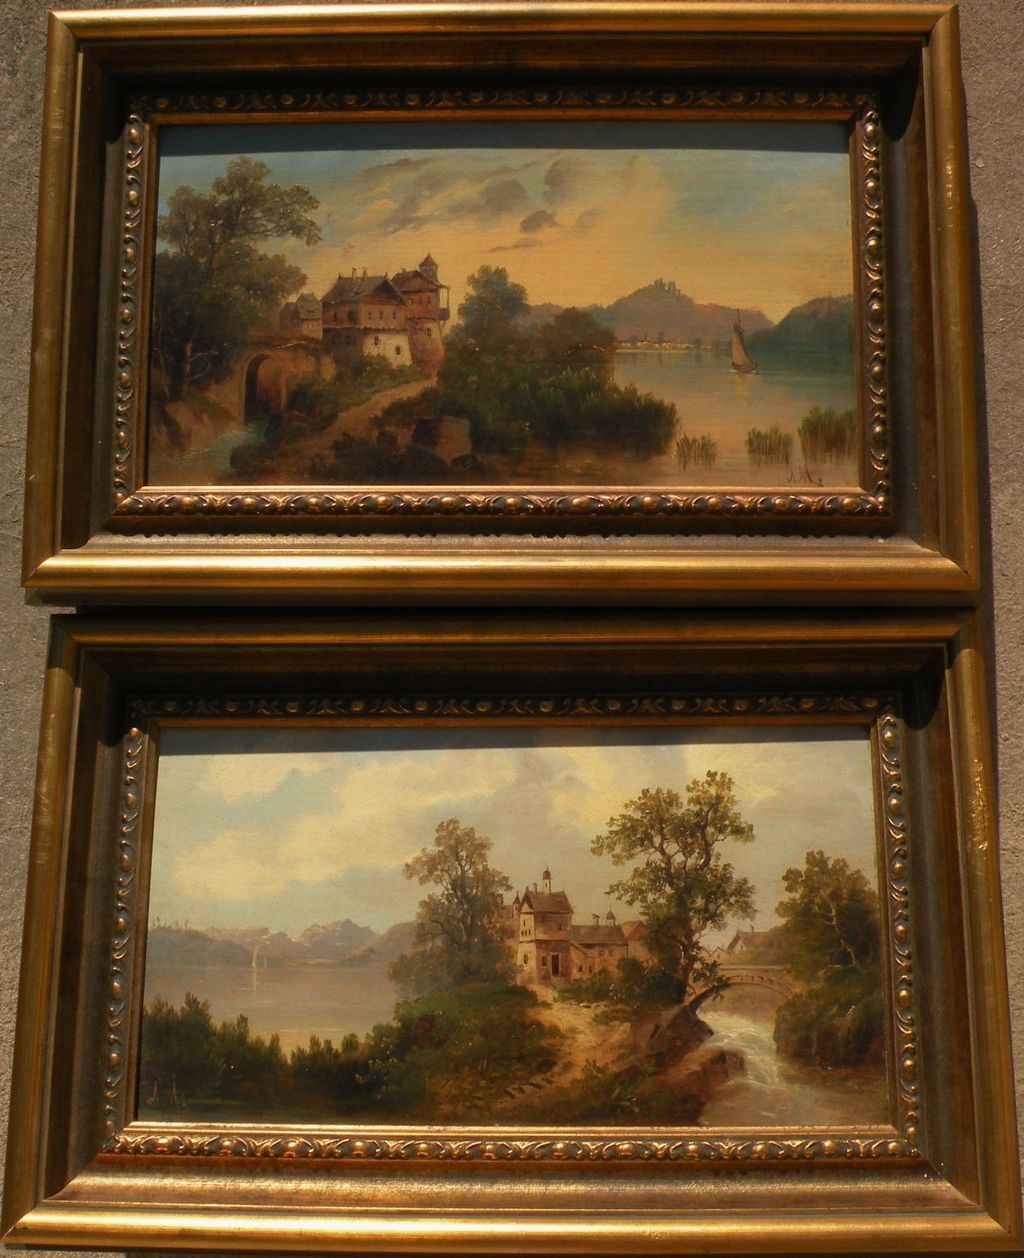 Wonderful image of German 19th century art PAIR signed landscape paintings on beveled  with #B89B13 color and 1024x1258 pixels